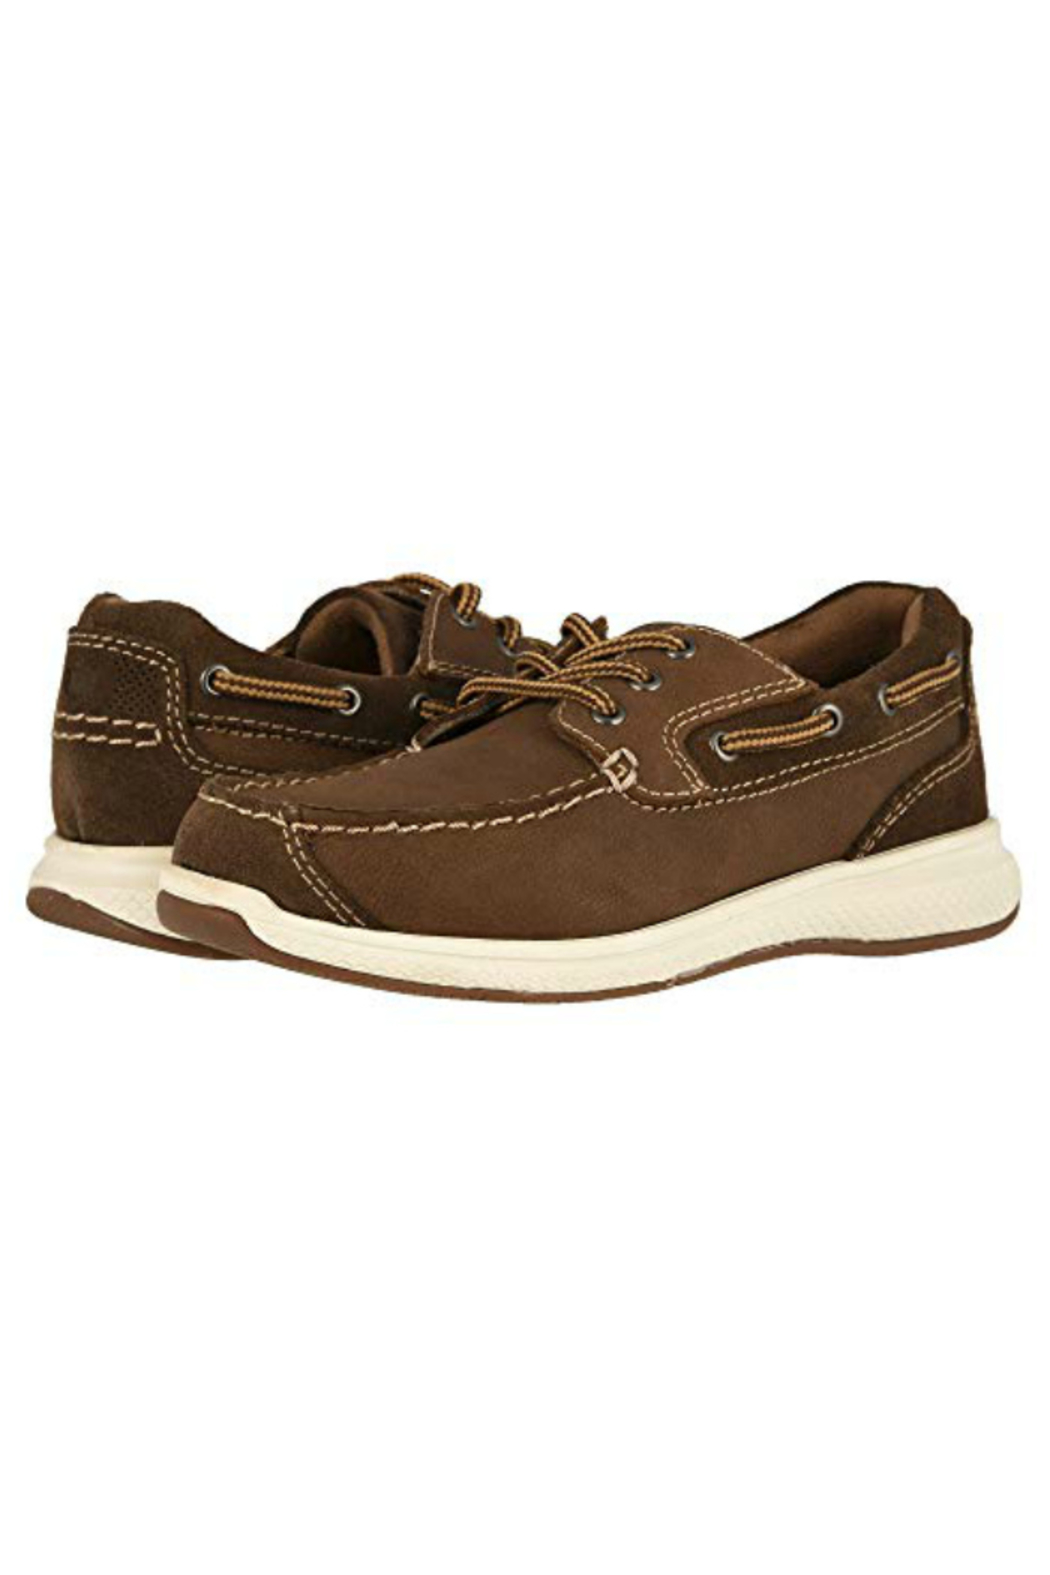 Florsheim FLORSHEIM GREAT LAKES OX JR - Main Image